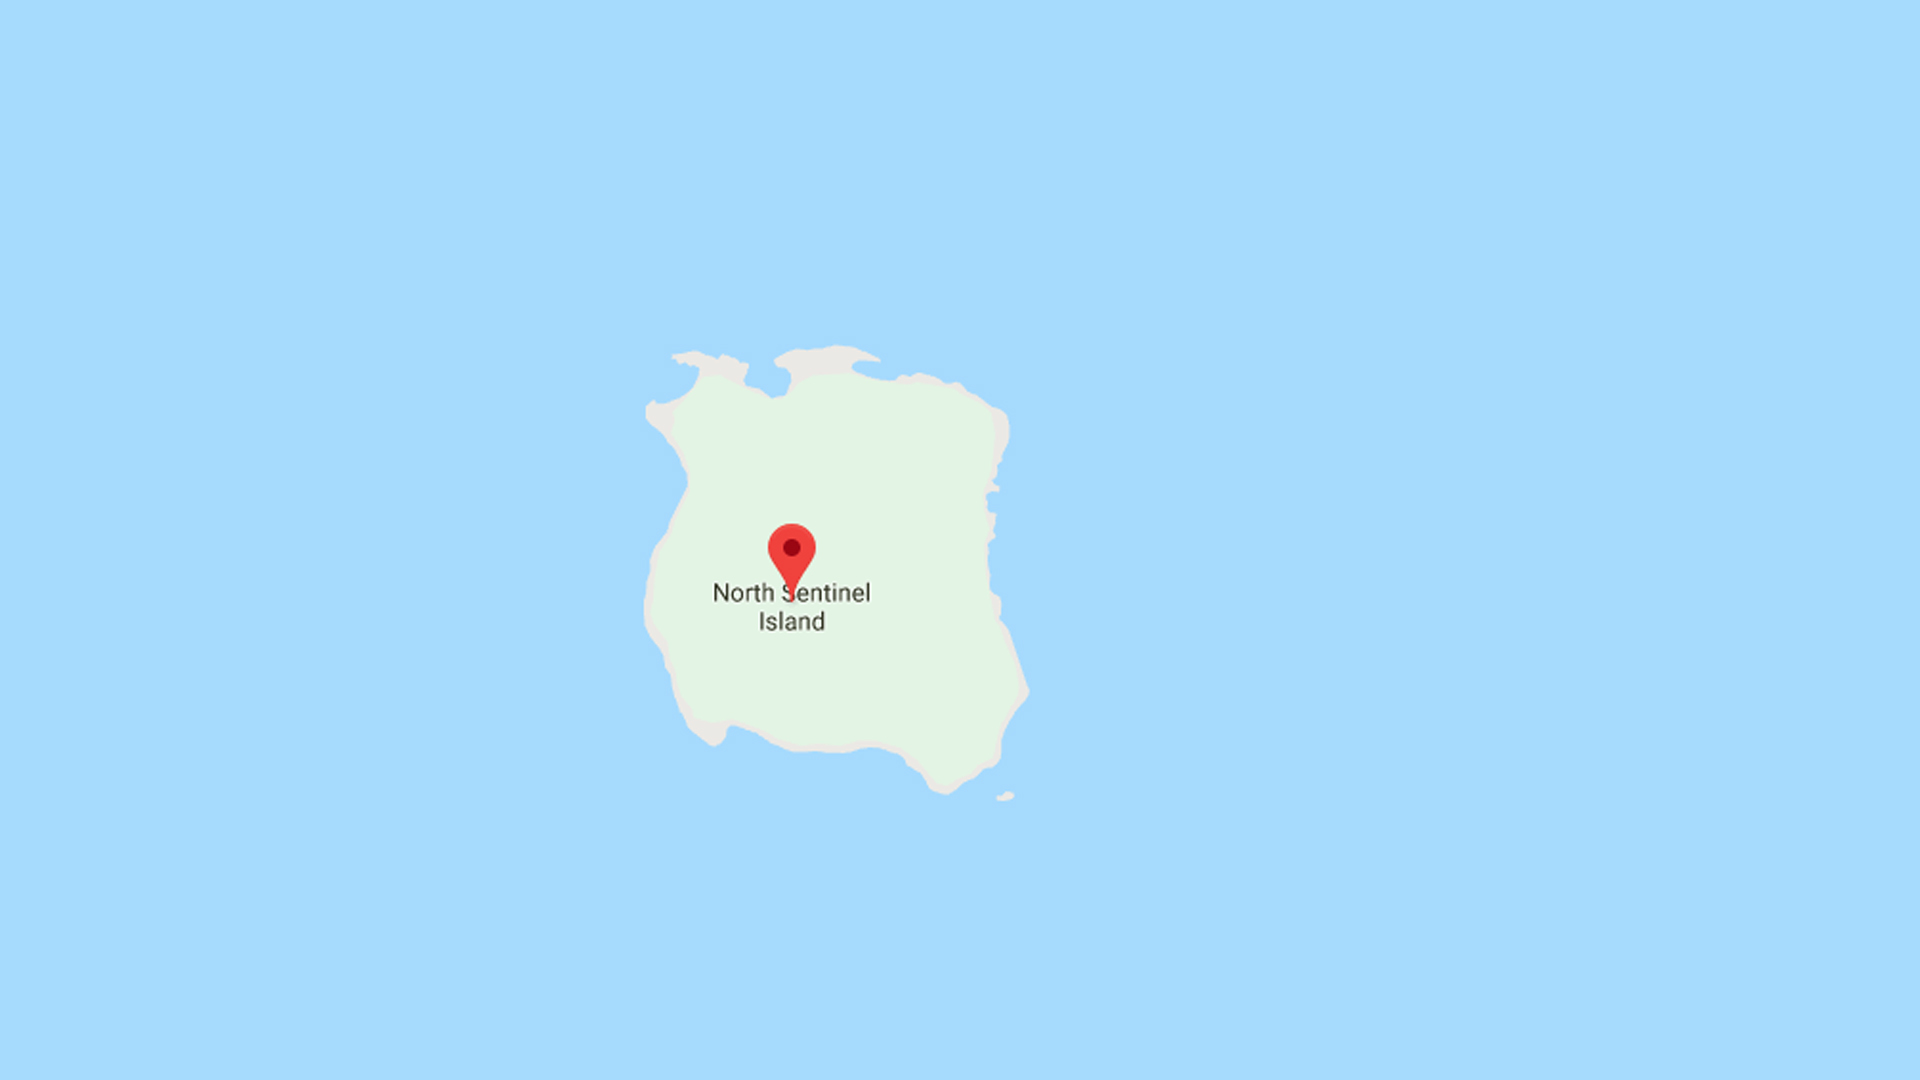 North Sentinel Island is shown in Google Maps.